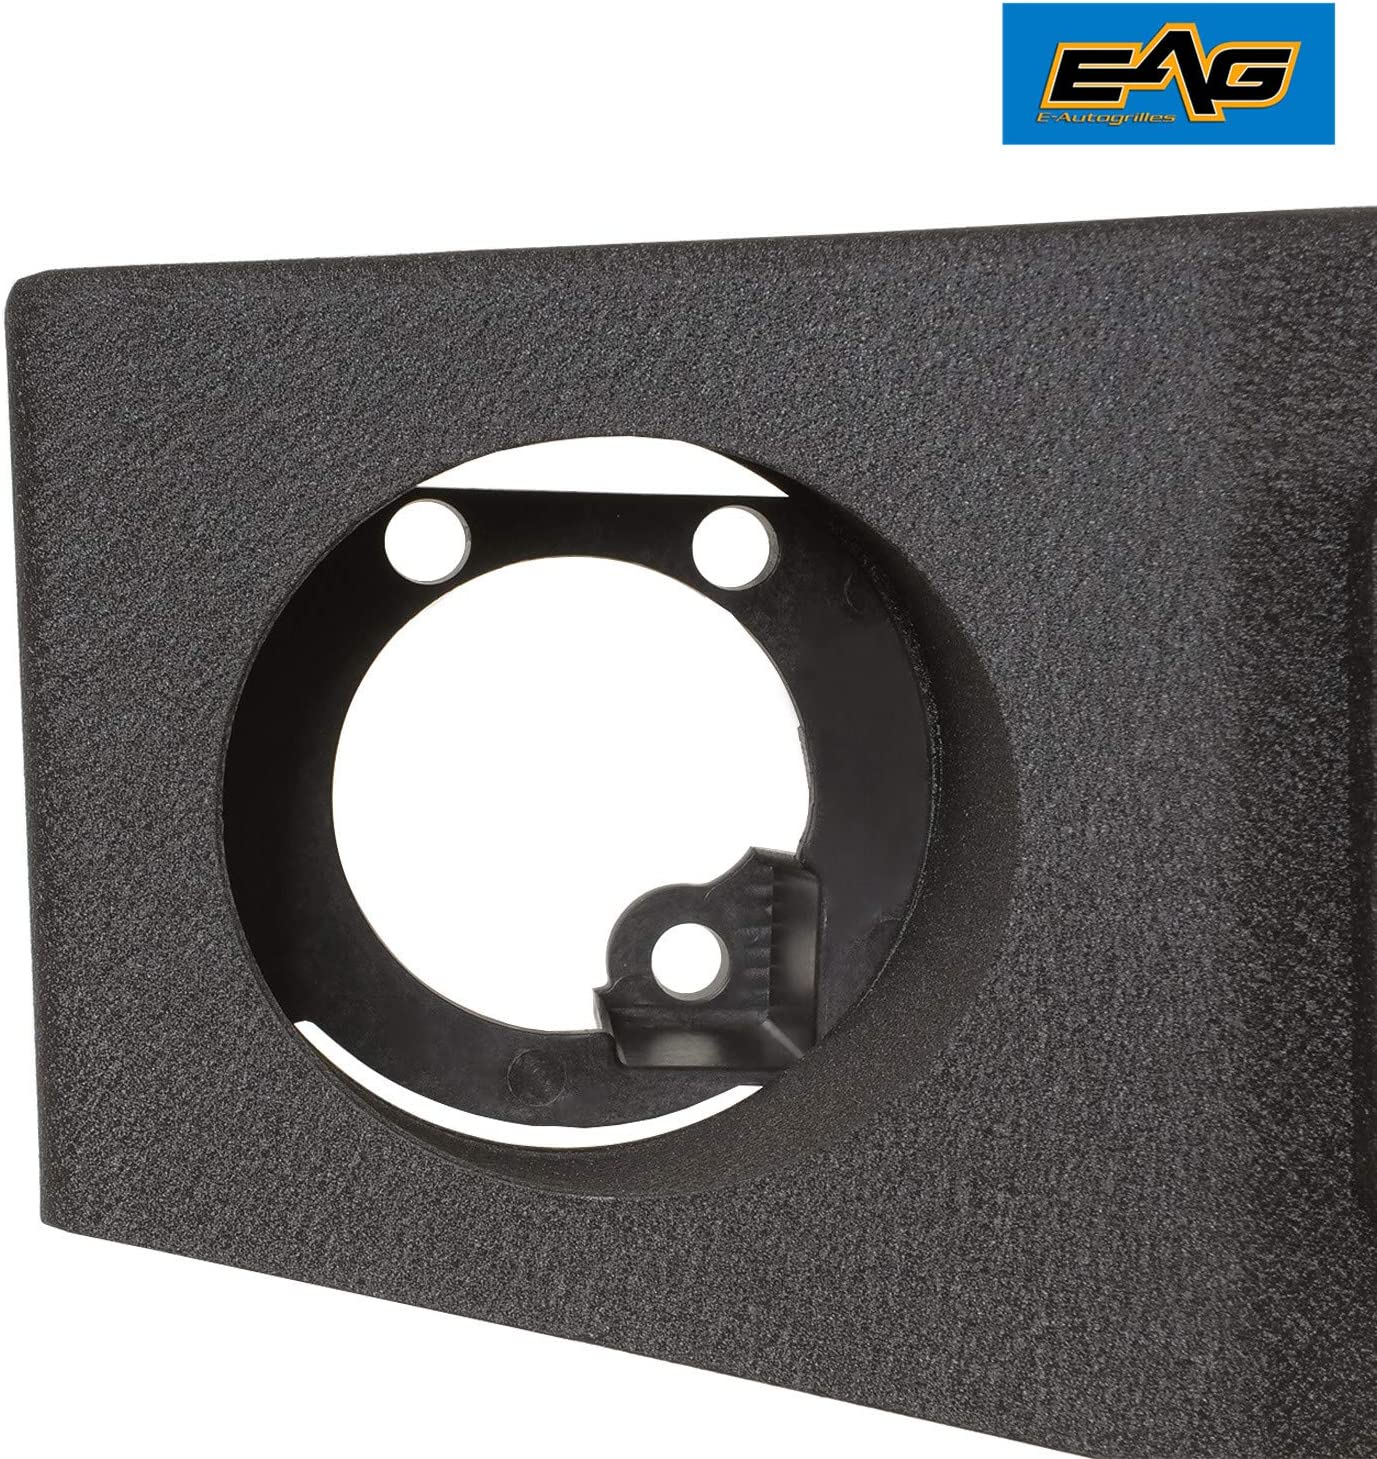 Automotive Exterior Accessories EAG Front Stubby Bumper with Fog ...